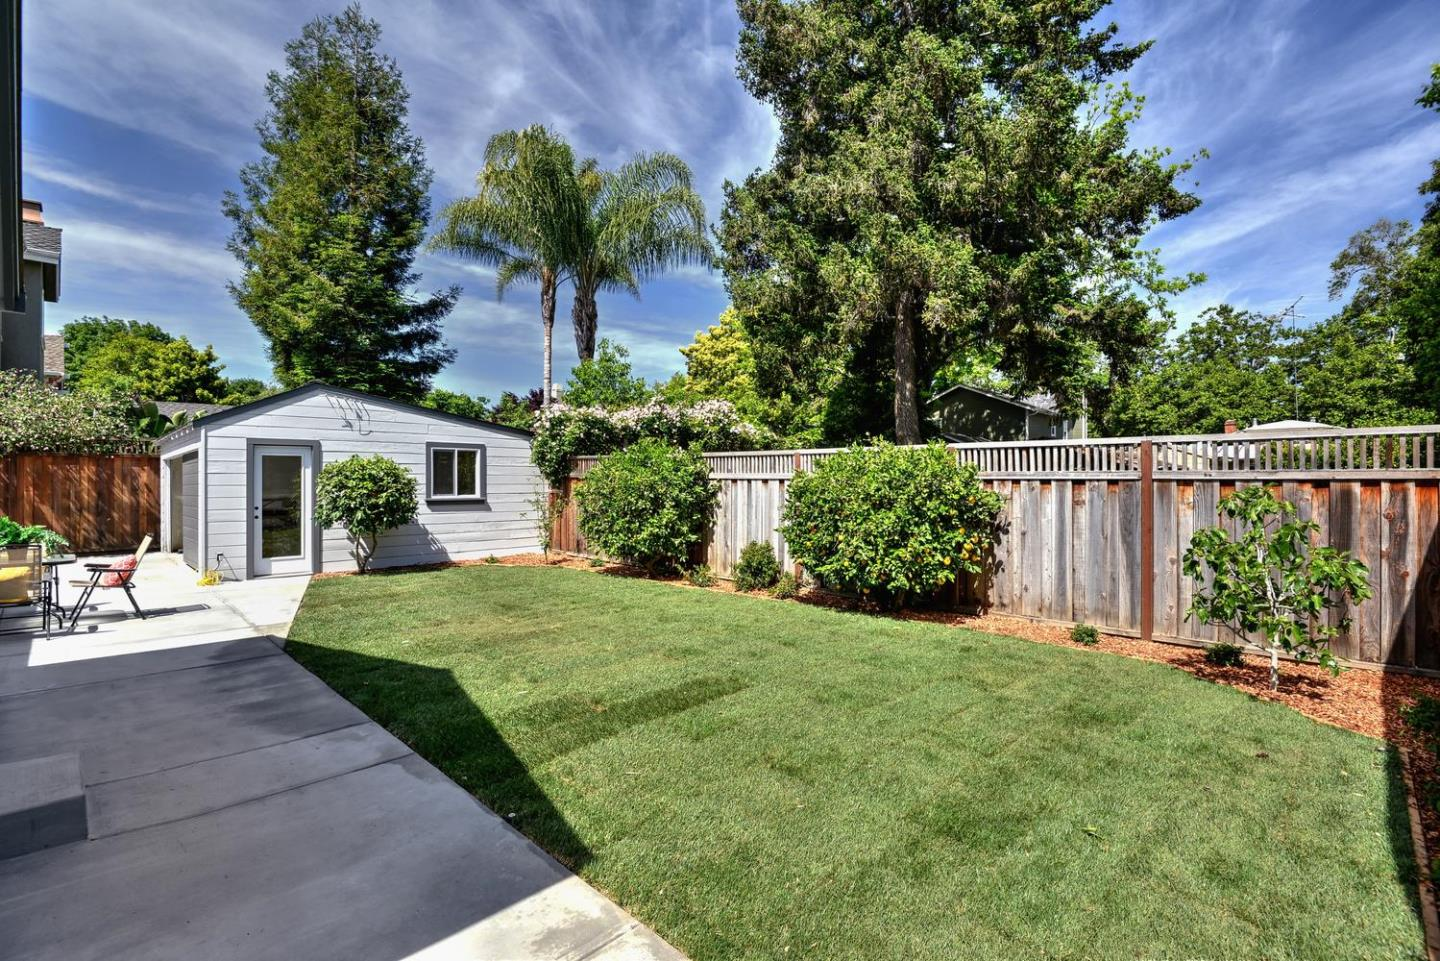 Additional photo for property listing at 1015 Louise Ave  SAN JOSE, CALIFORNIA 95125